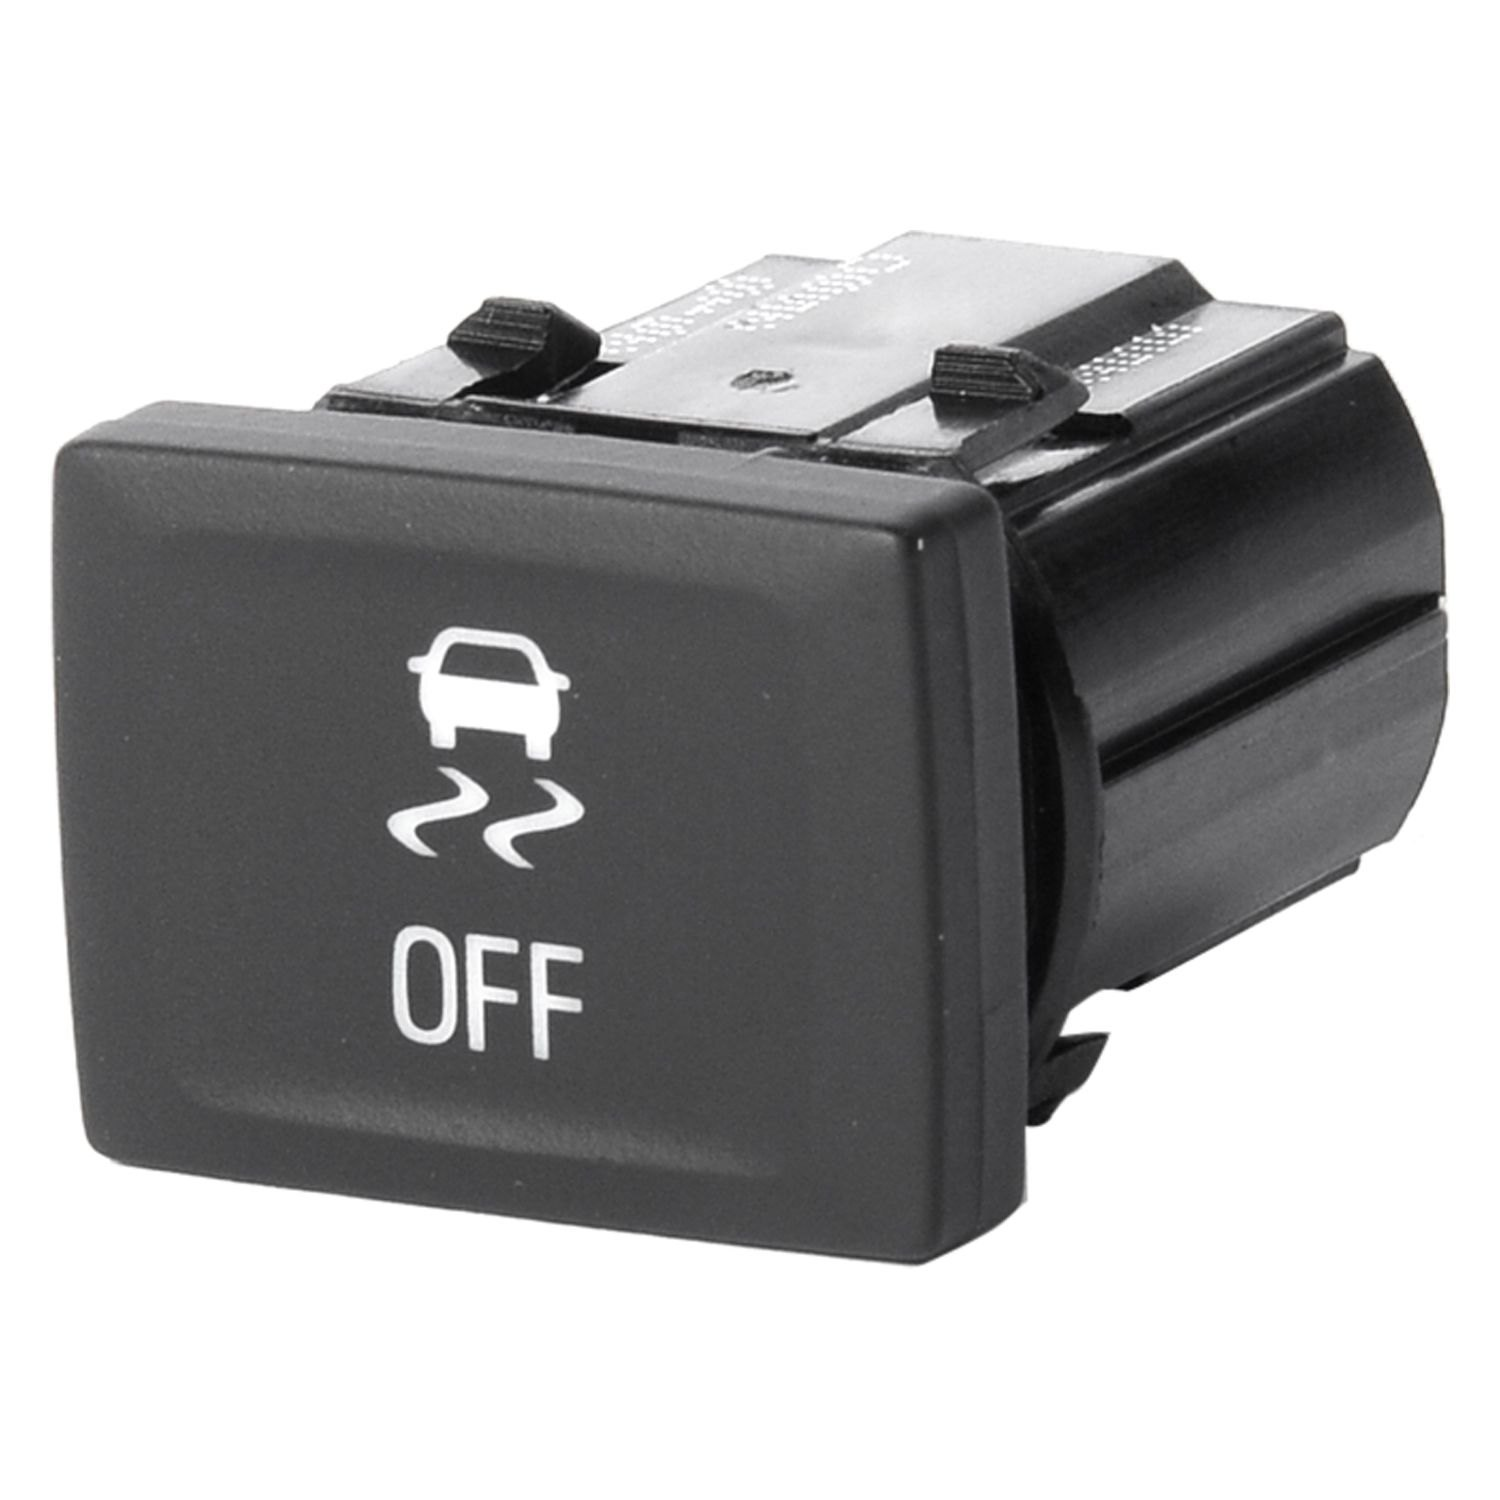 acdelco 25802918 chevy equinox 2014 gm original equipment traction control switch. Black Bedroom Furniture Sets. Home Design Ideas